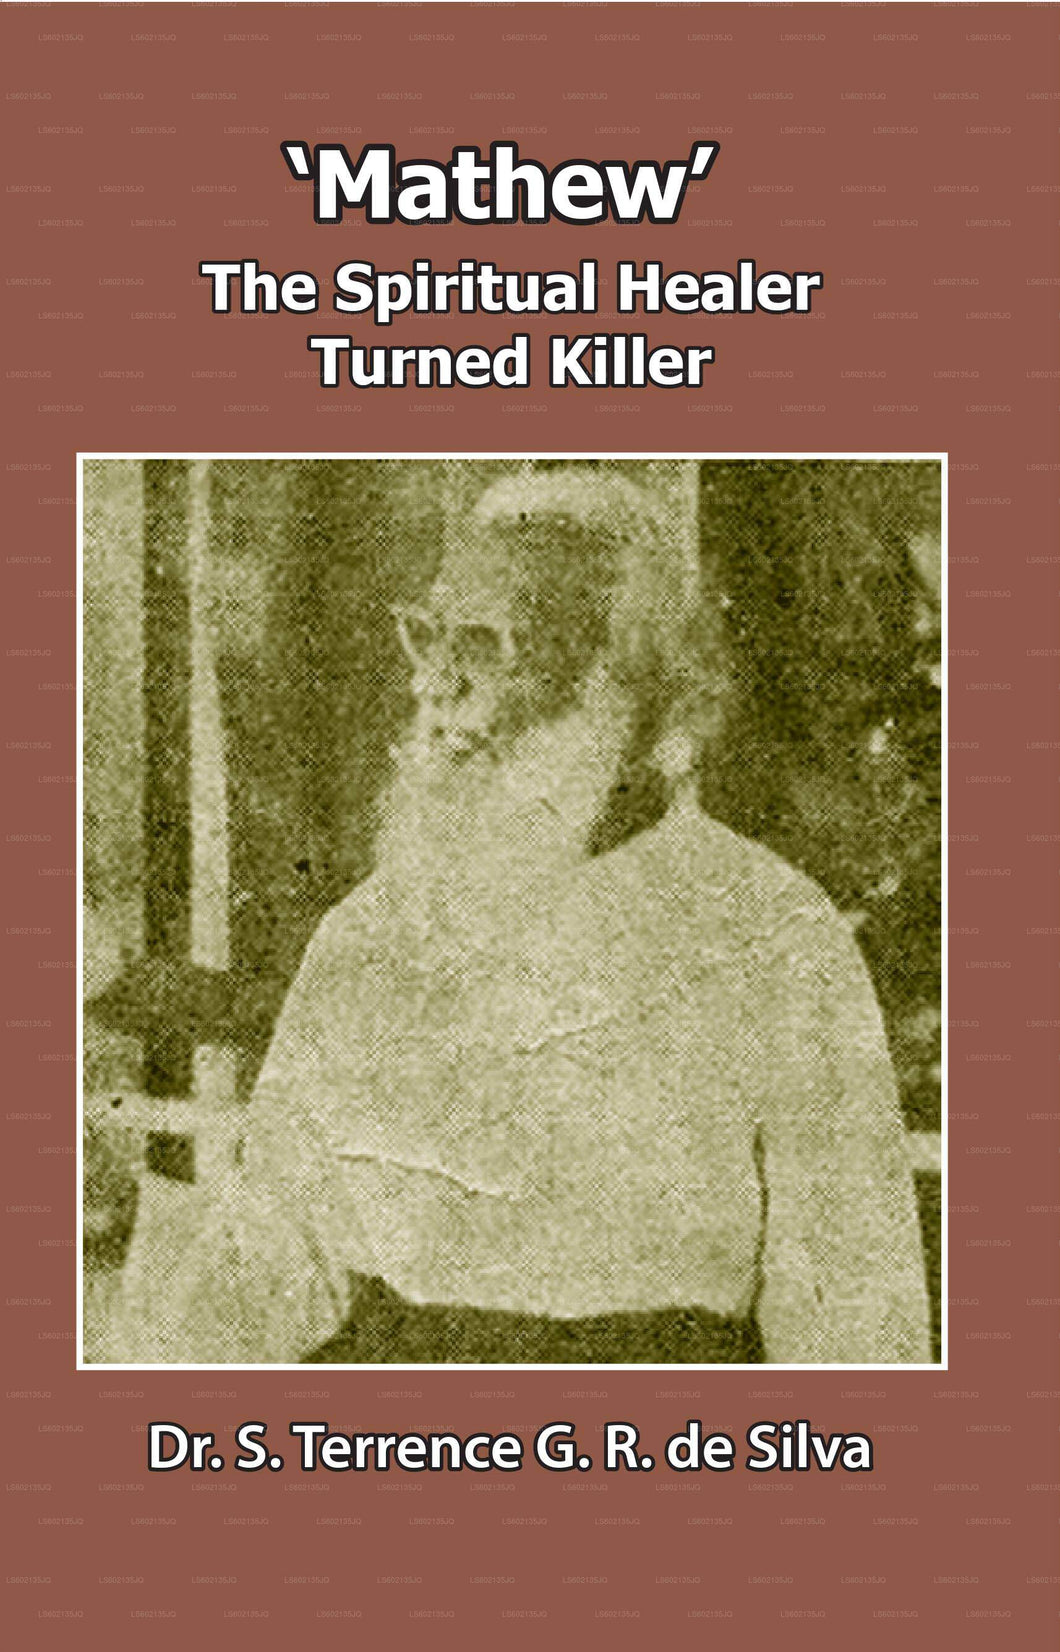 'Mathew' The Spiritual Healer Turned Killer